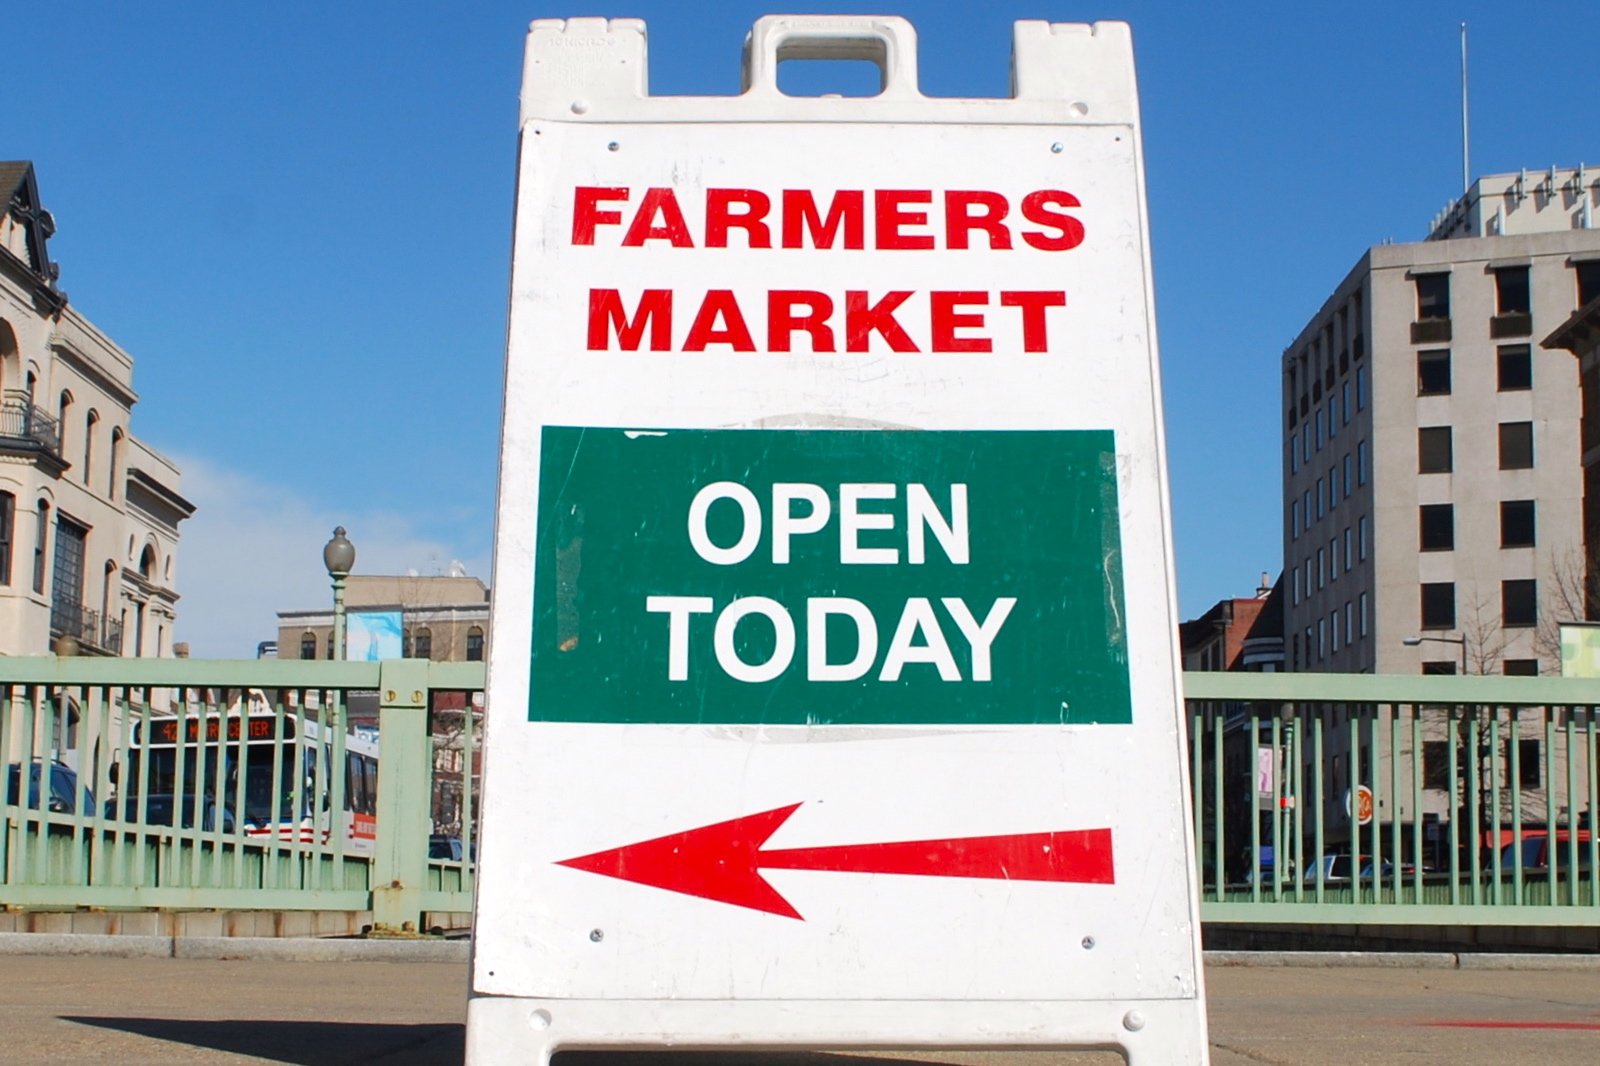 Sign points to open farmers market.